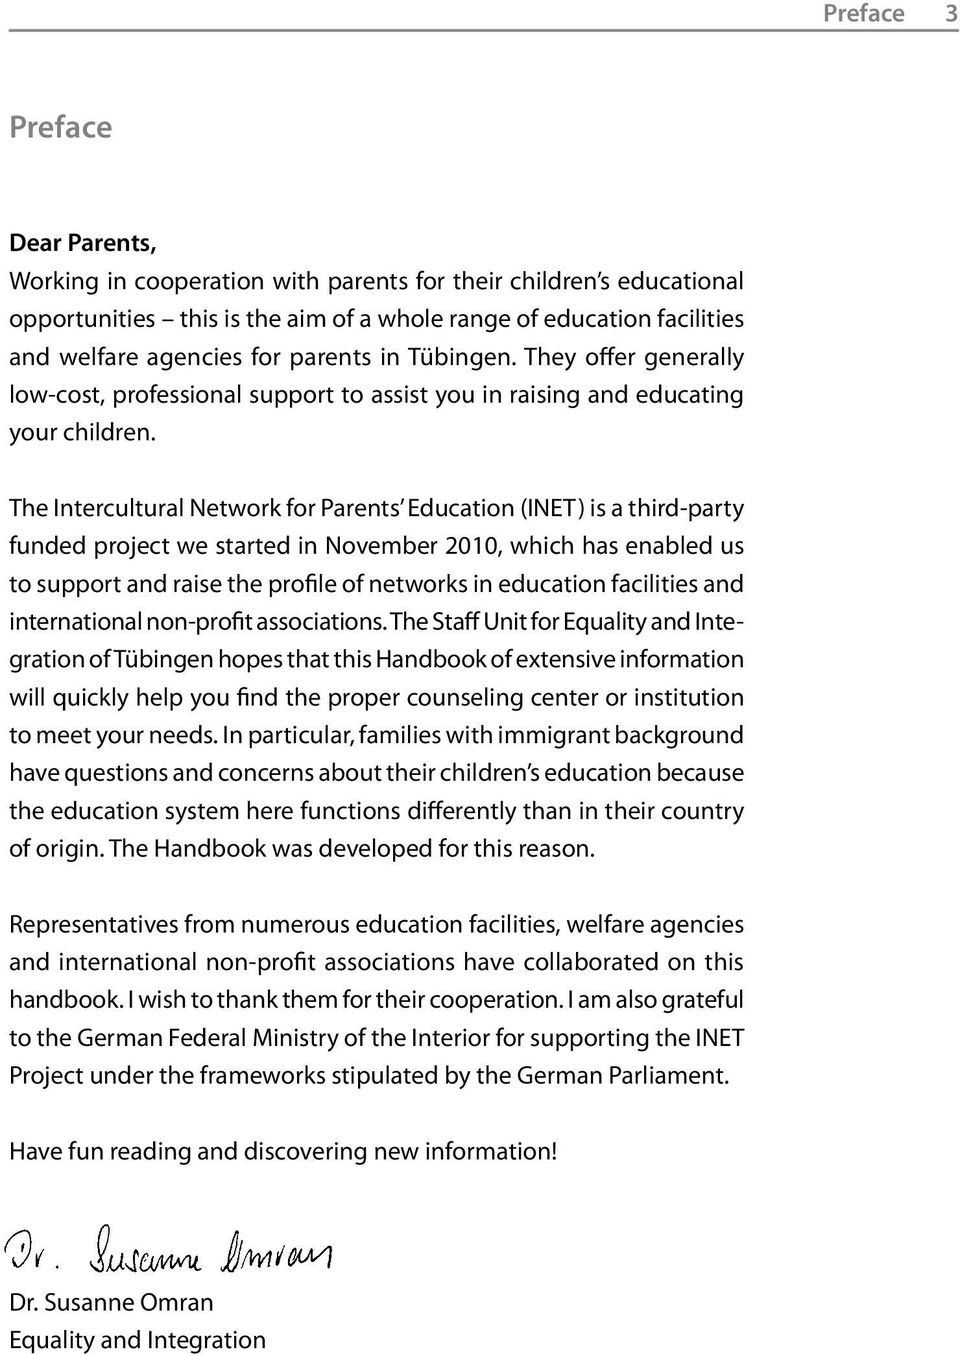 The Intercultural Network for Parents Education (INET) is a third-party funded project we started in November 2010, which has enabled us to support and raise the profile of networks in education